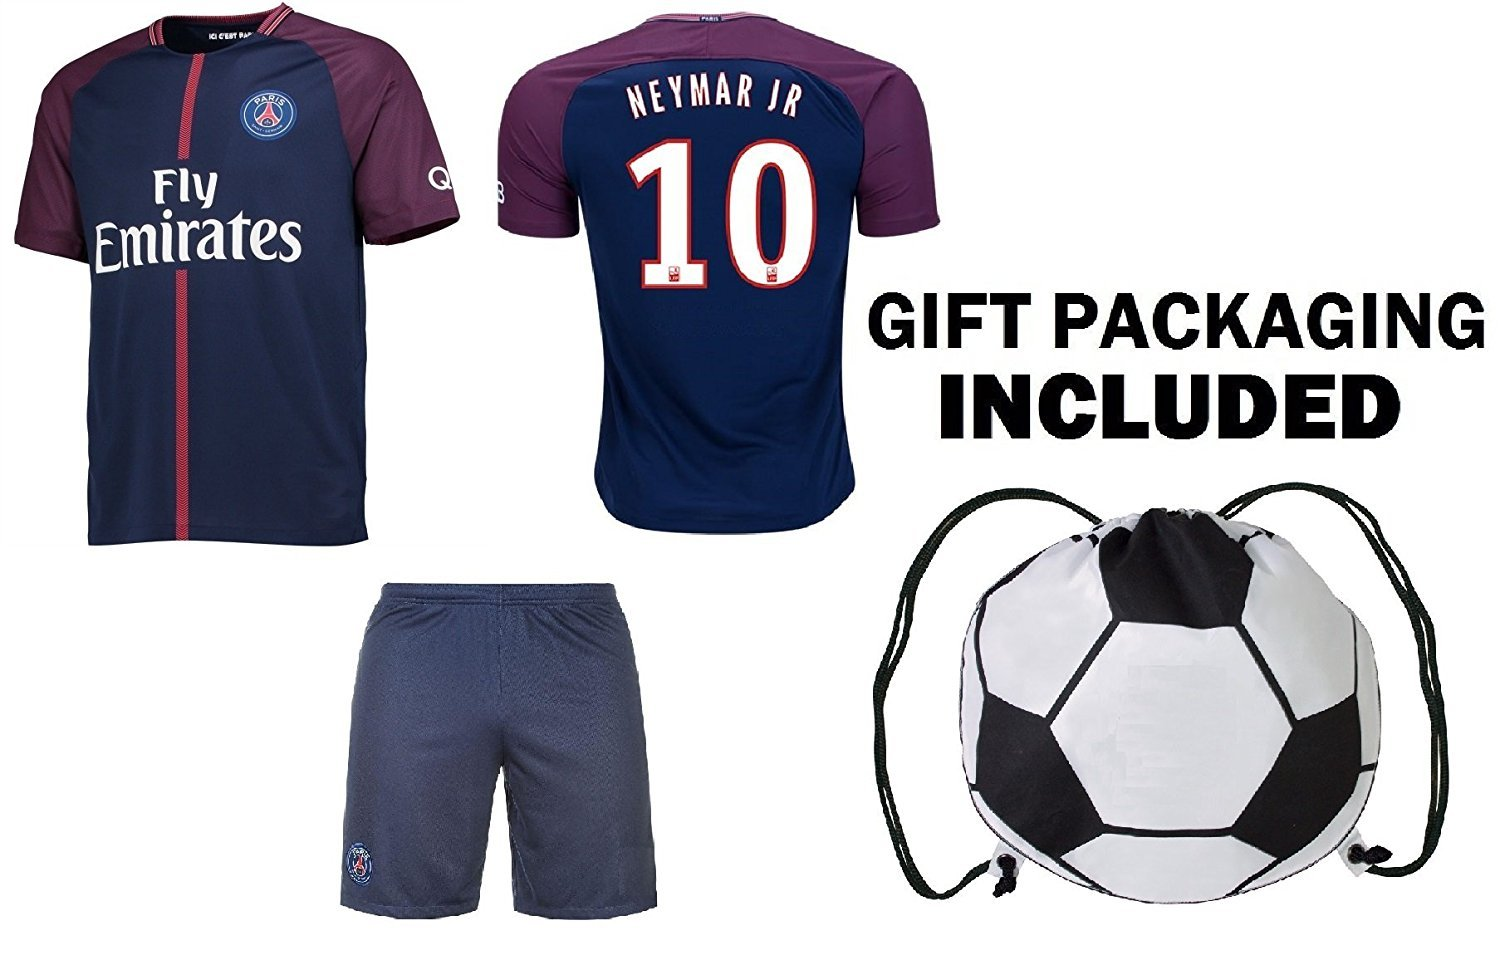 best service 98384 724dd Details about Fan Kitbag Neymar Jr #10 PSG Soccer Jersey & Shorts Paris  Saint Germain Youth...